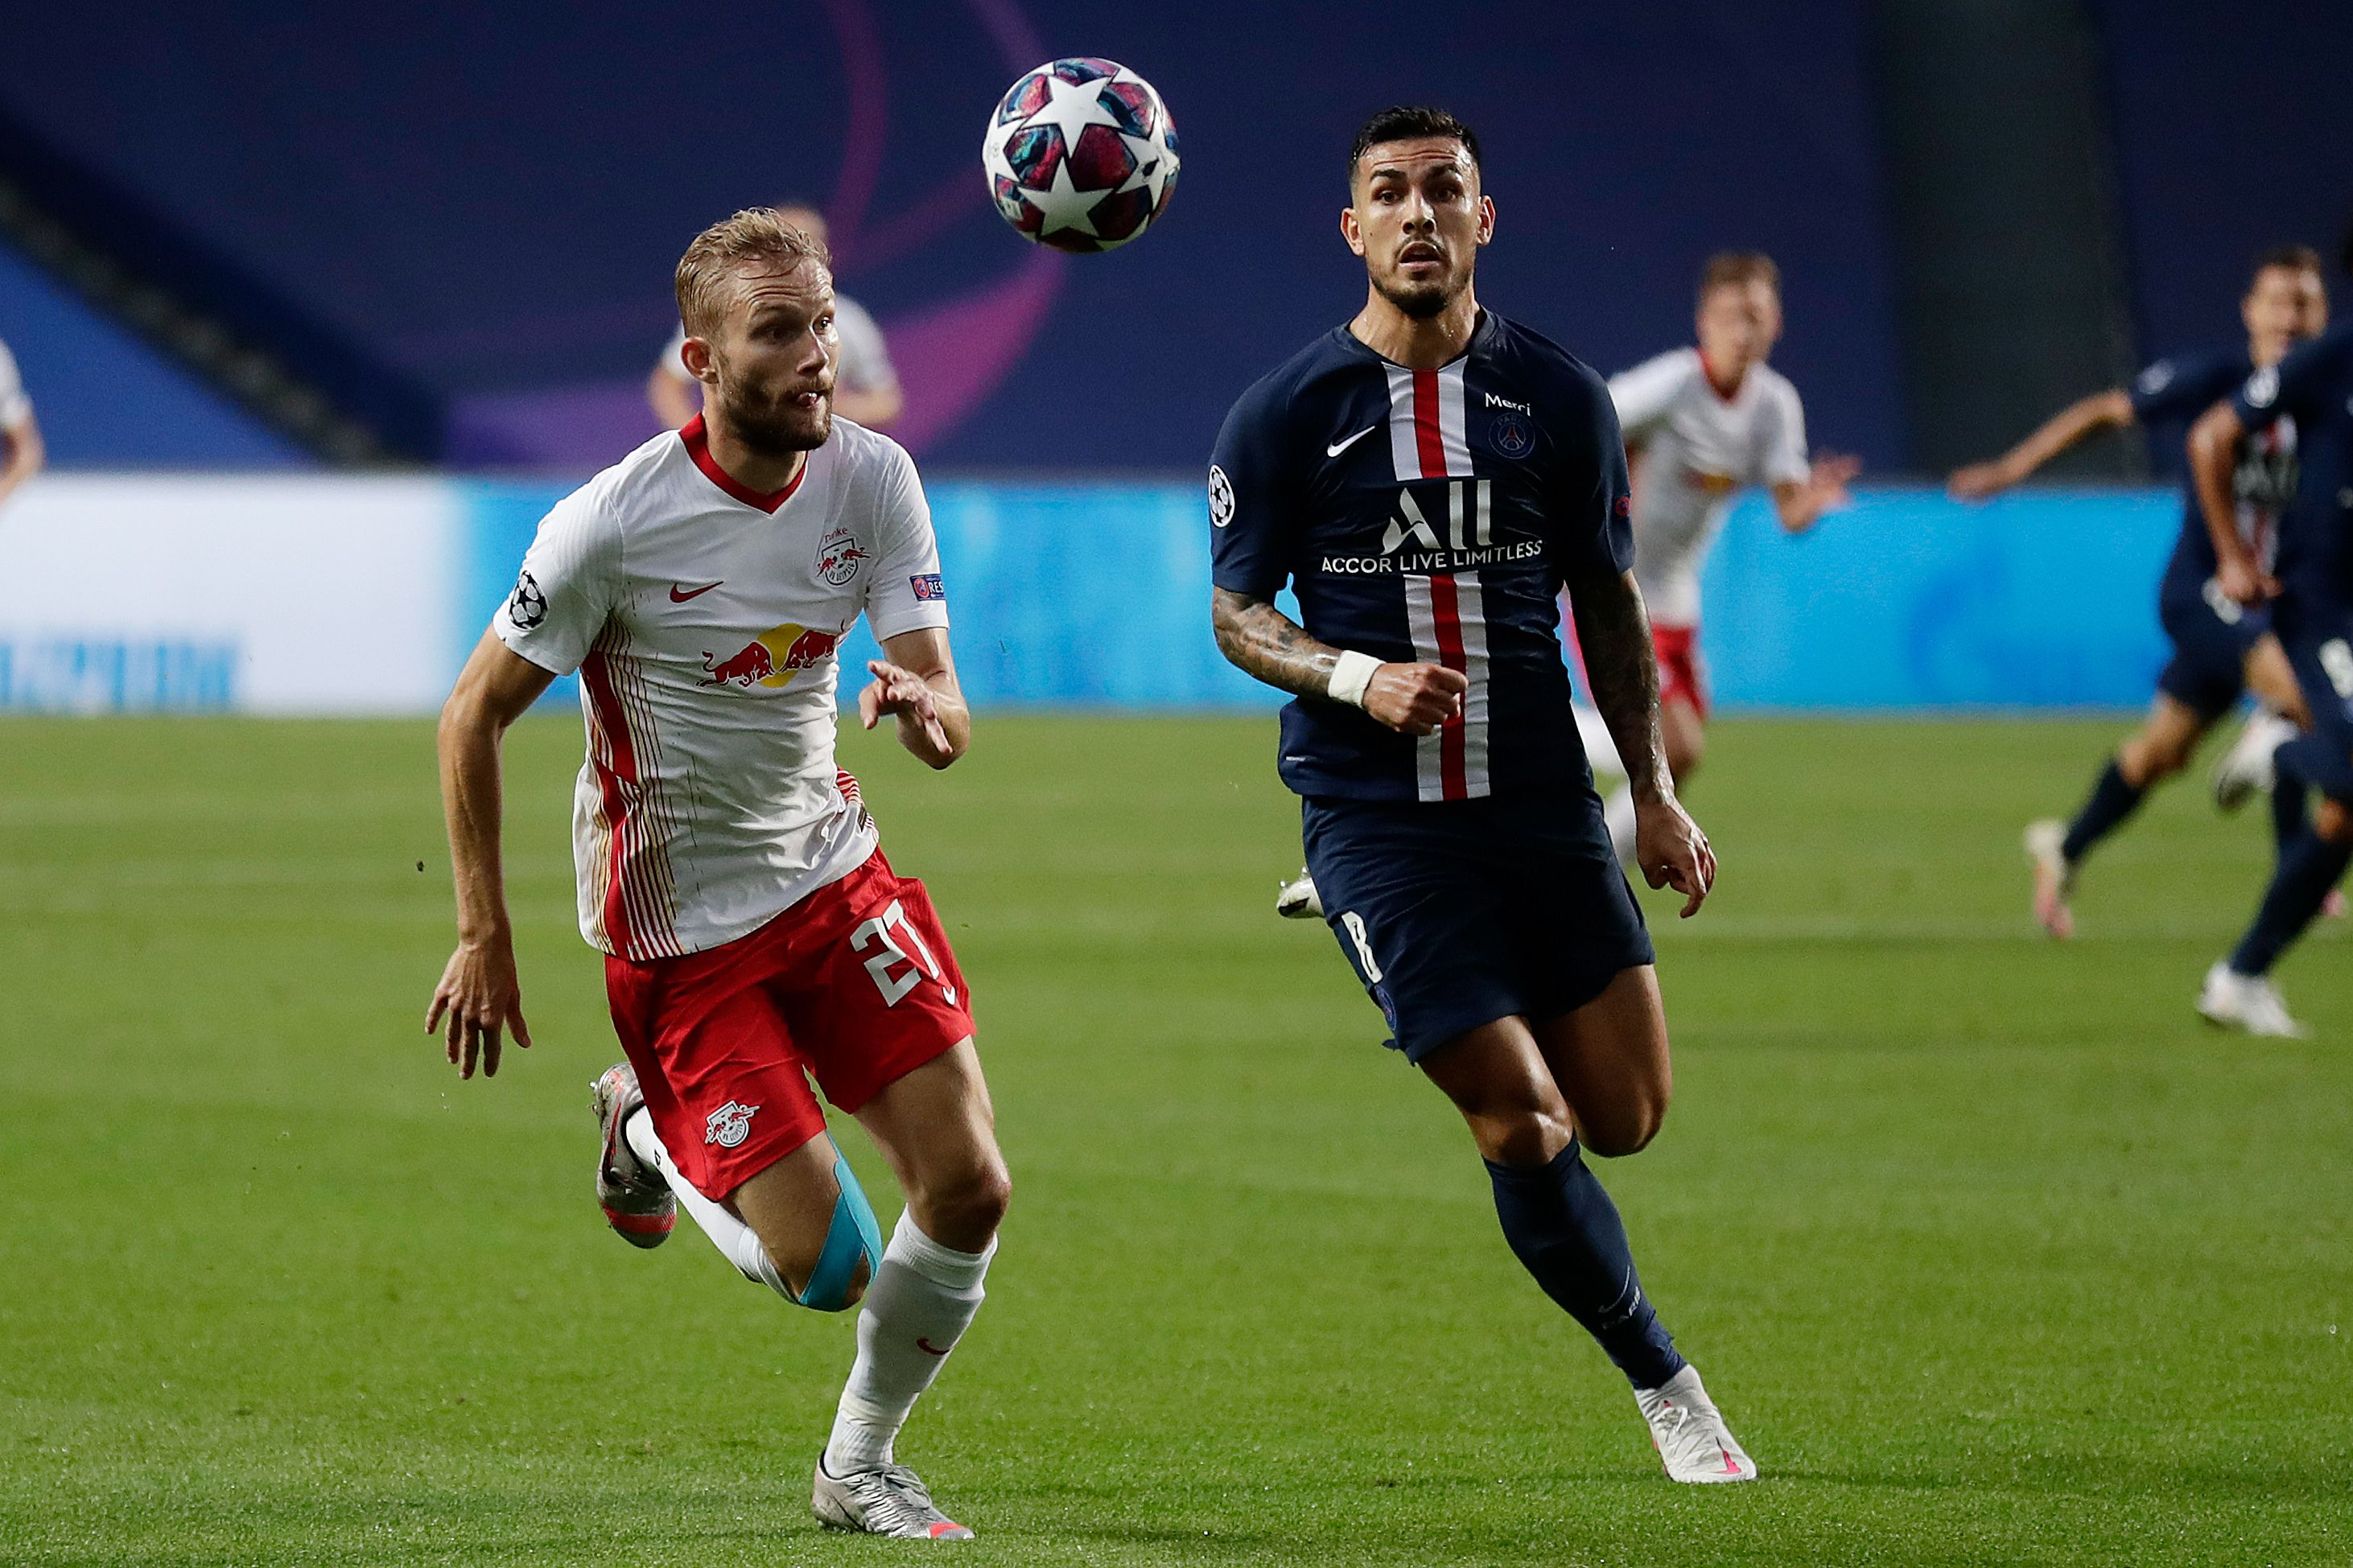 We Have A Score To Settle Rb Leipzig Sporting Director On Meeting Psg In This Season S Champions League Group Stage Psg Talk